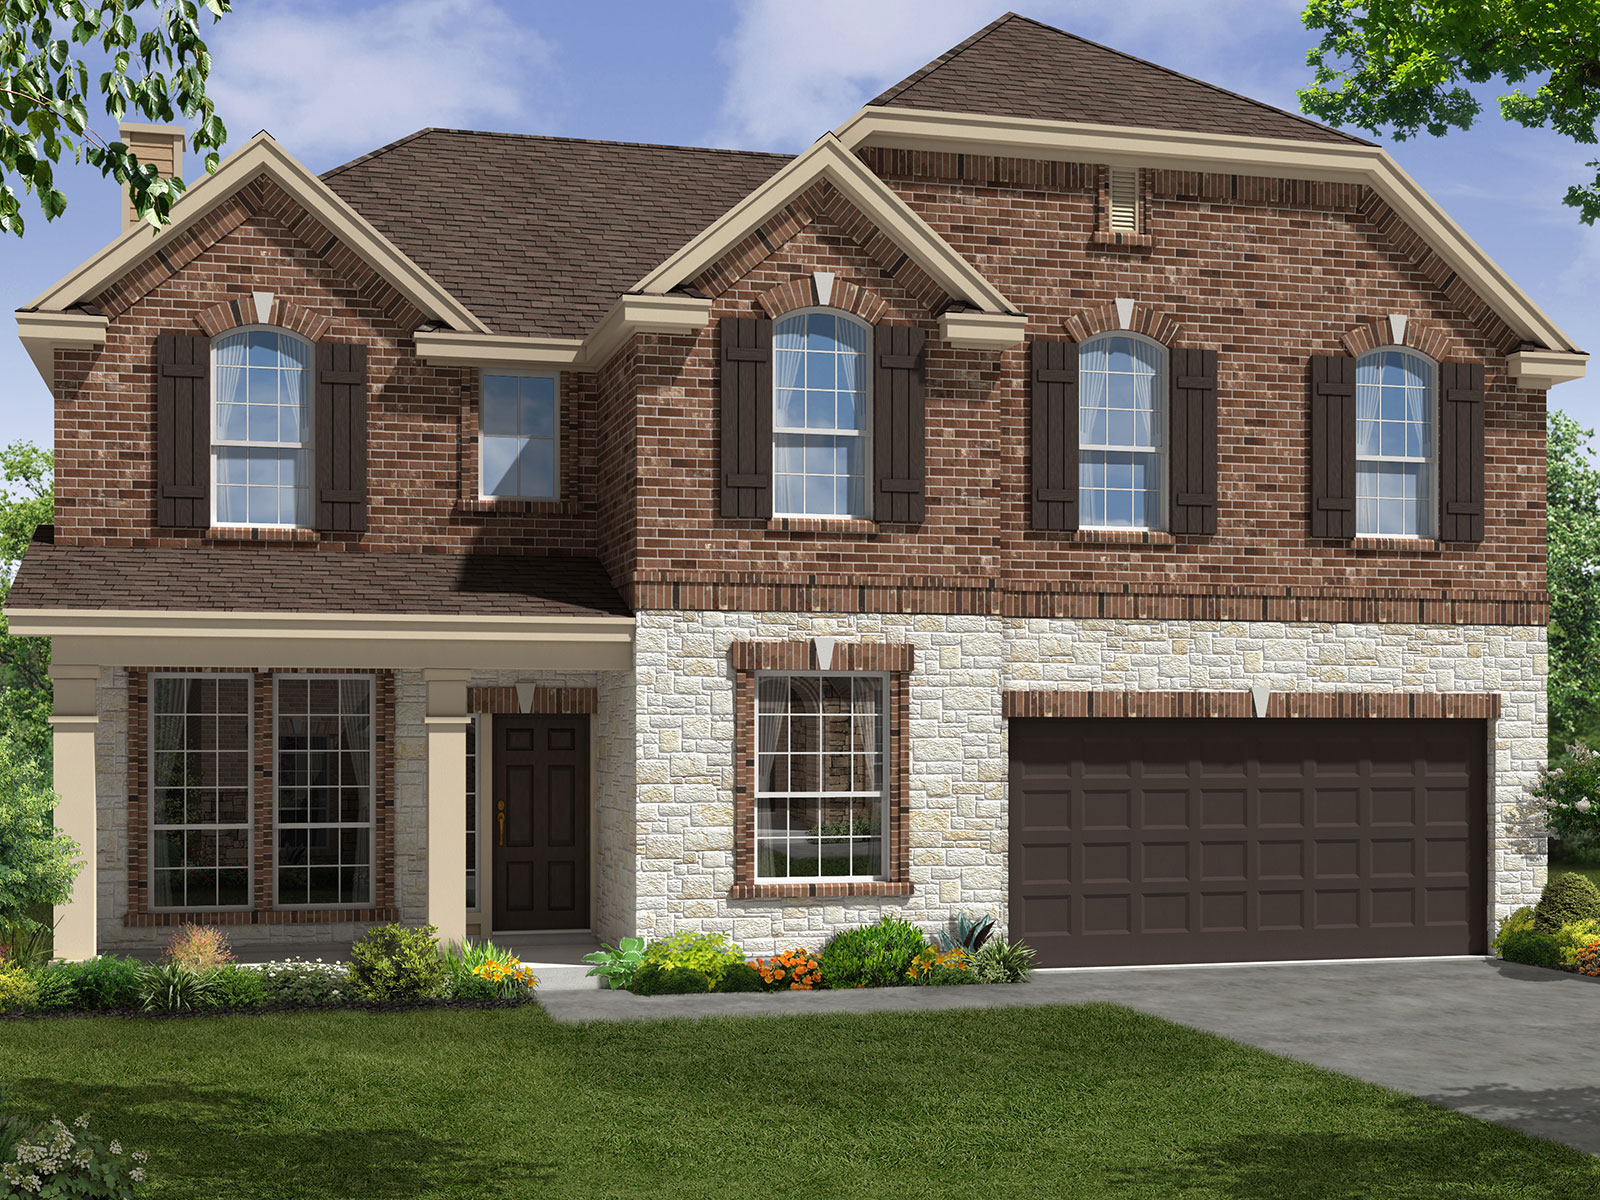 The windrose 5570 model 4br 3ba homes for sale in for Home elevation houston